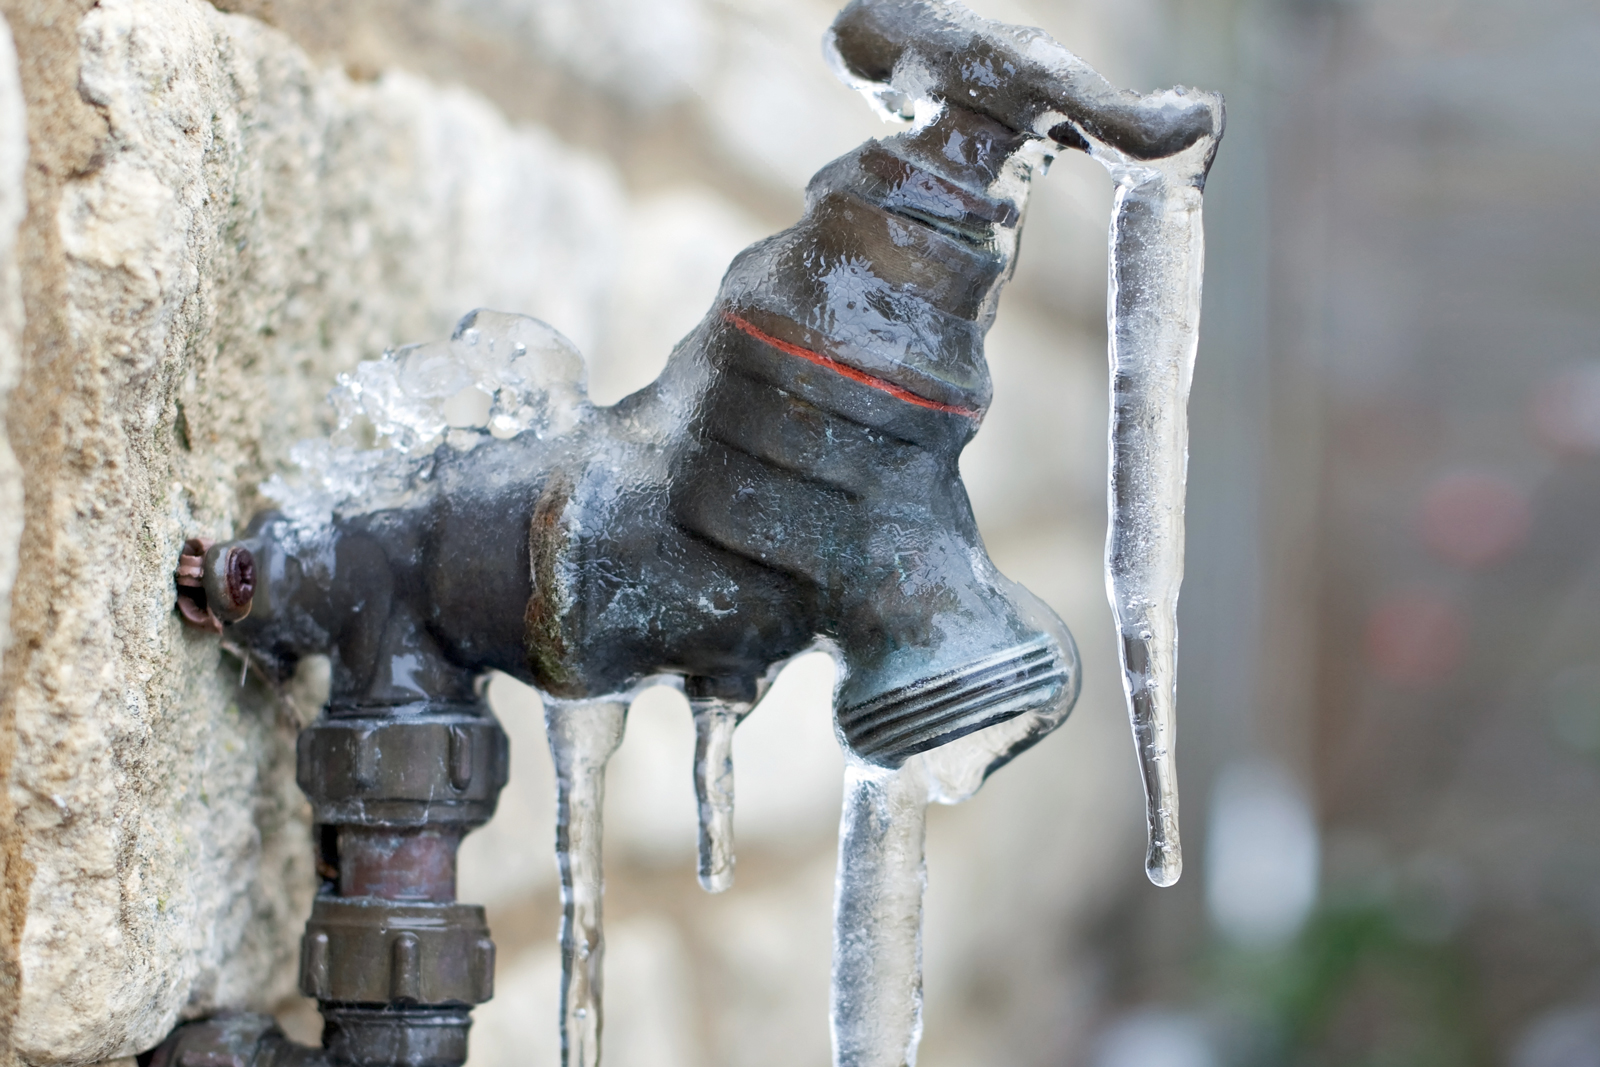 how-prevent-pipes-freezing-faucet-standard_42ec33aed660182221a798783f9ef81d